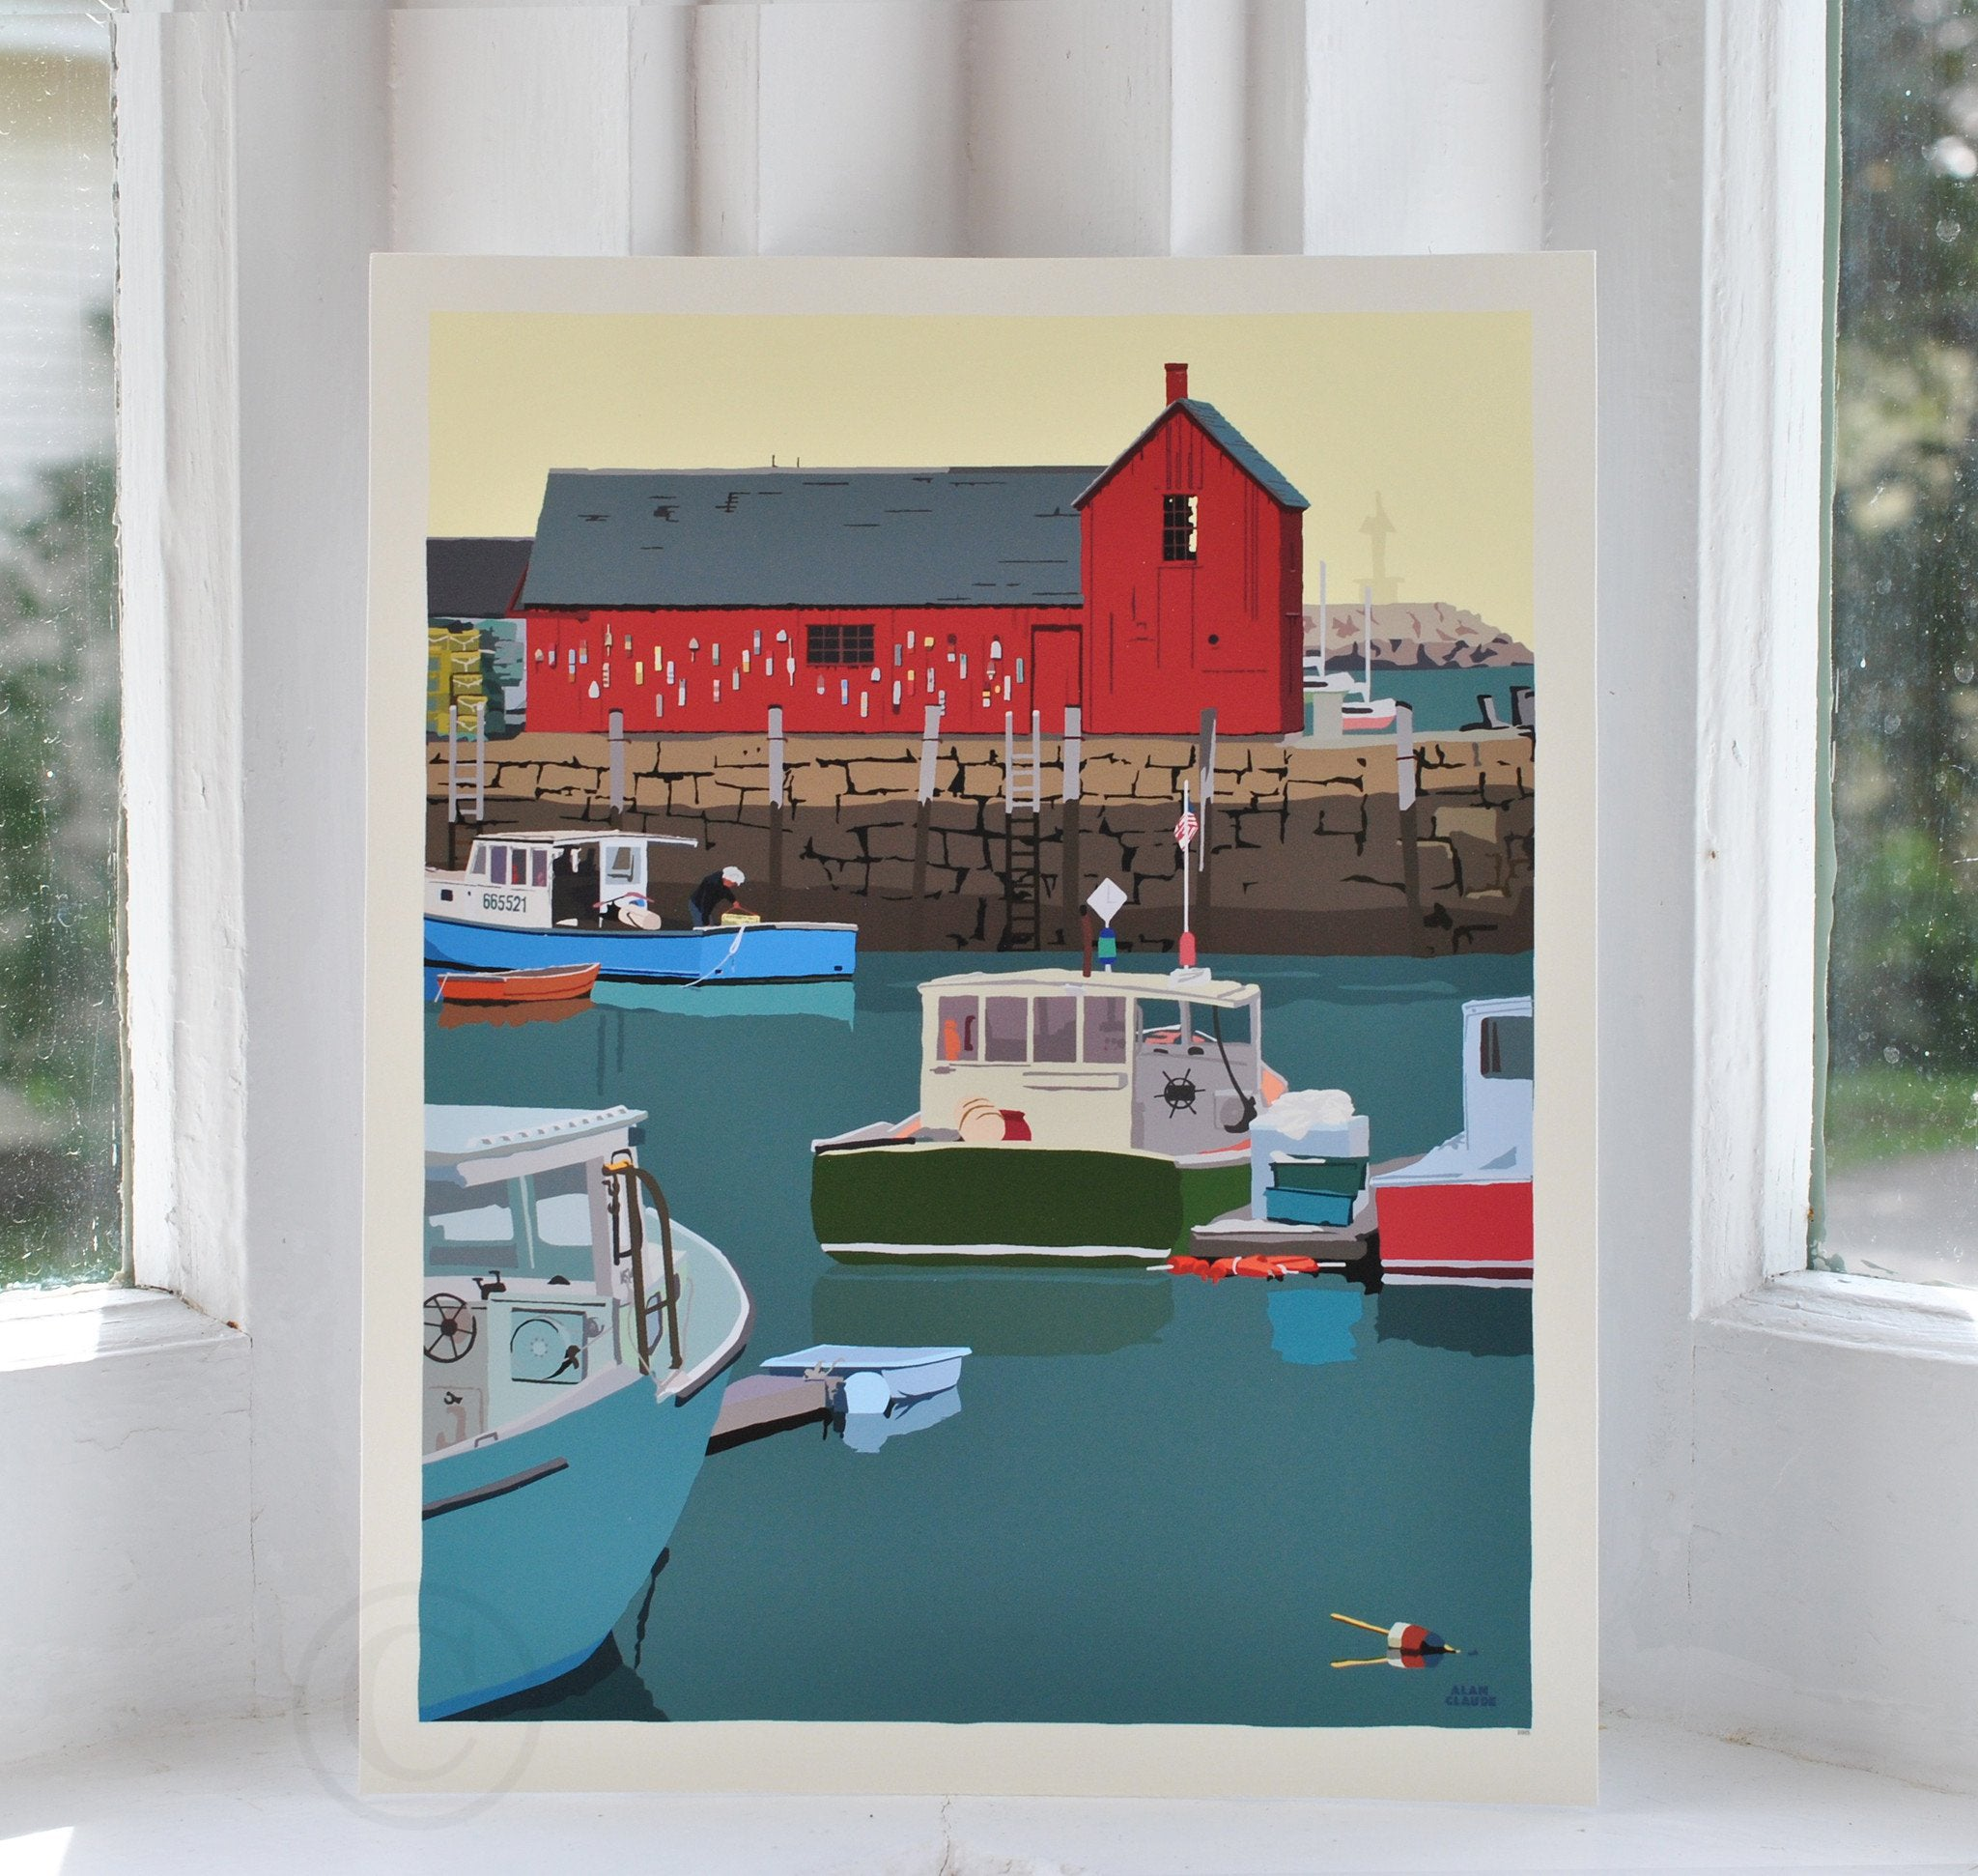 "Motif #1 version A Art Print 8"" x 10"" Wall Poster - Massachusetts"